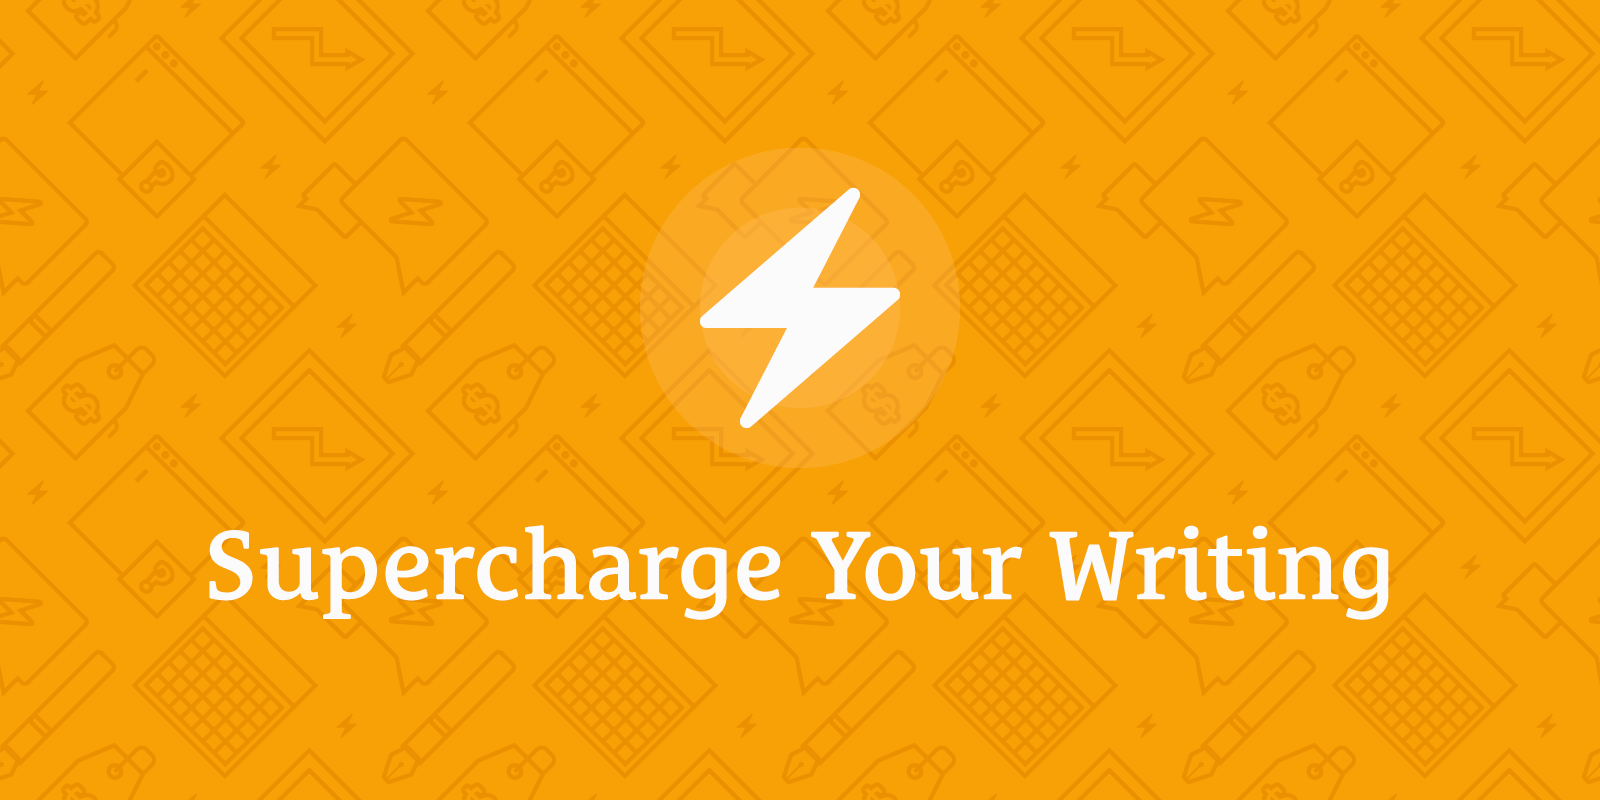 Supercharge Your Writing